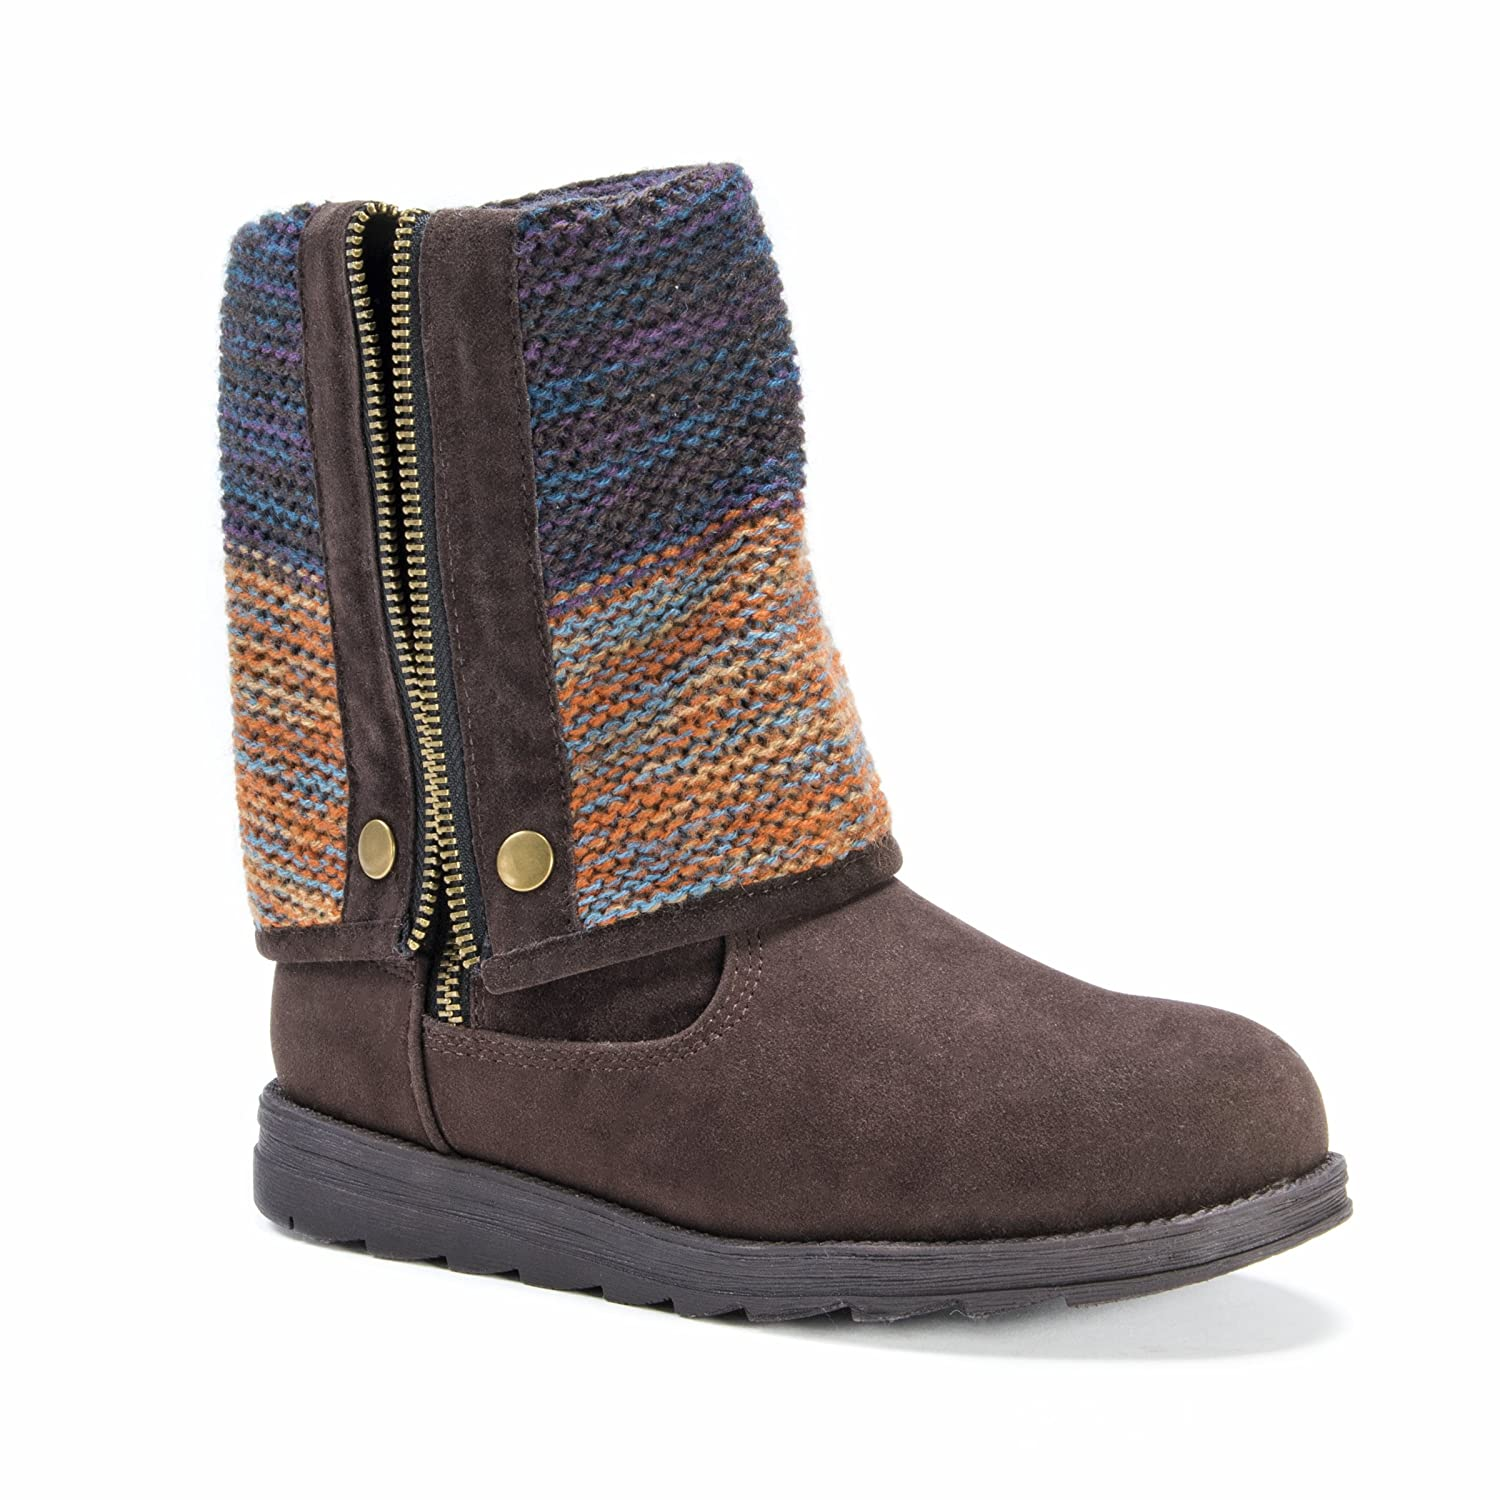 MUK LUKS Women's Demi Winter Boot B01M9B75Z6 10 B(M) US|Dark Brown